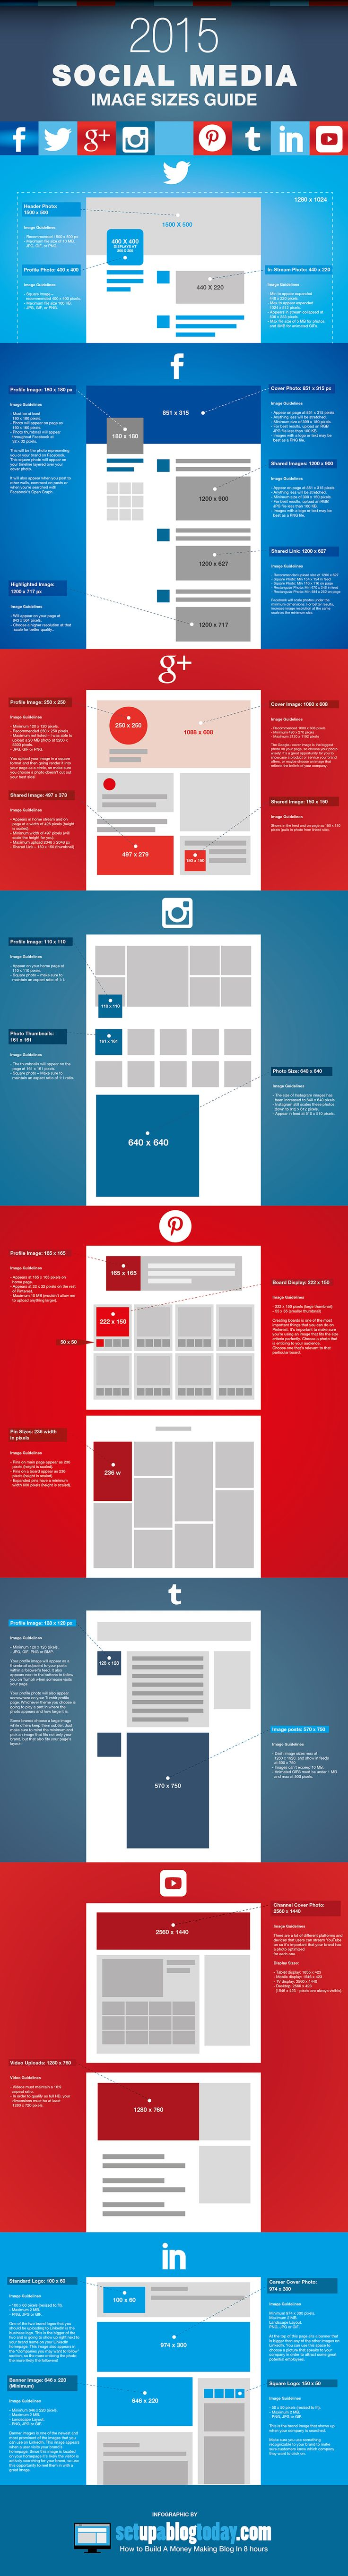 2015 Ultimate Social Media Image Sizes Guide Cheat Sheet Infographic